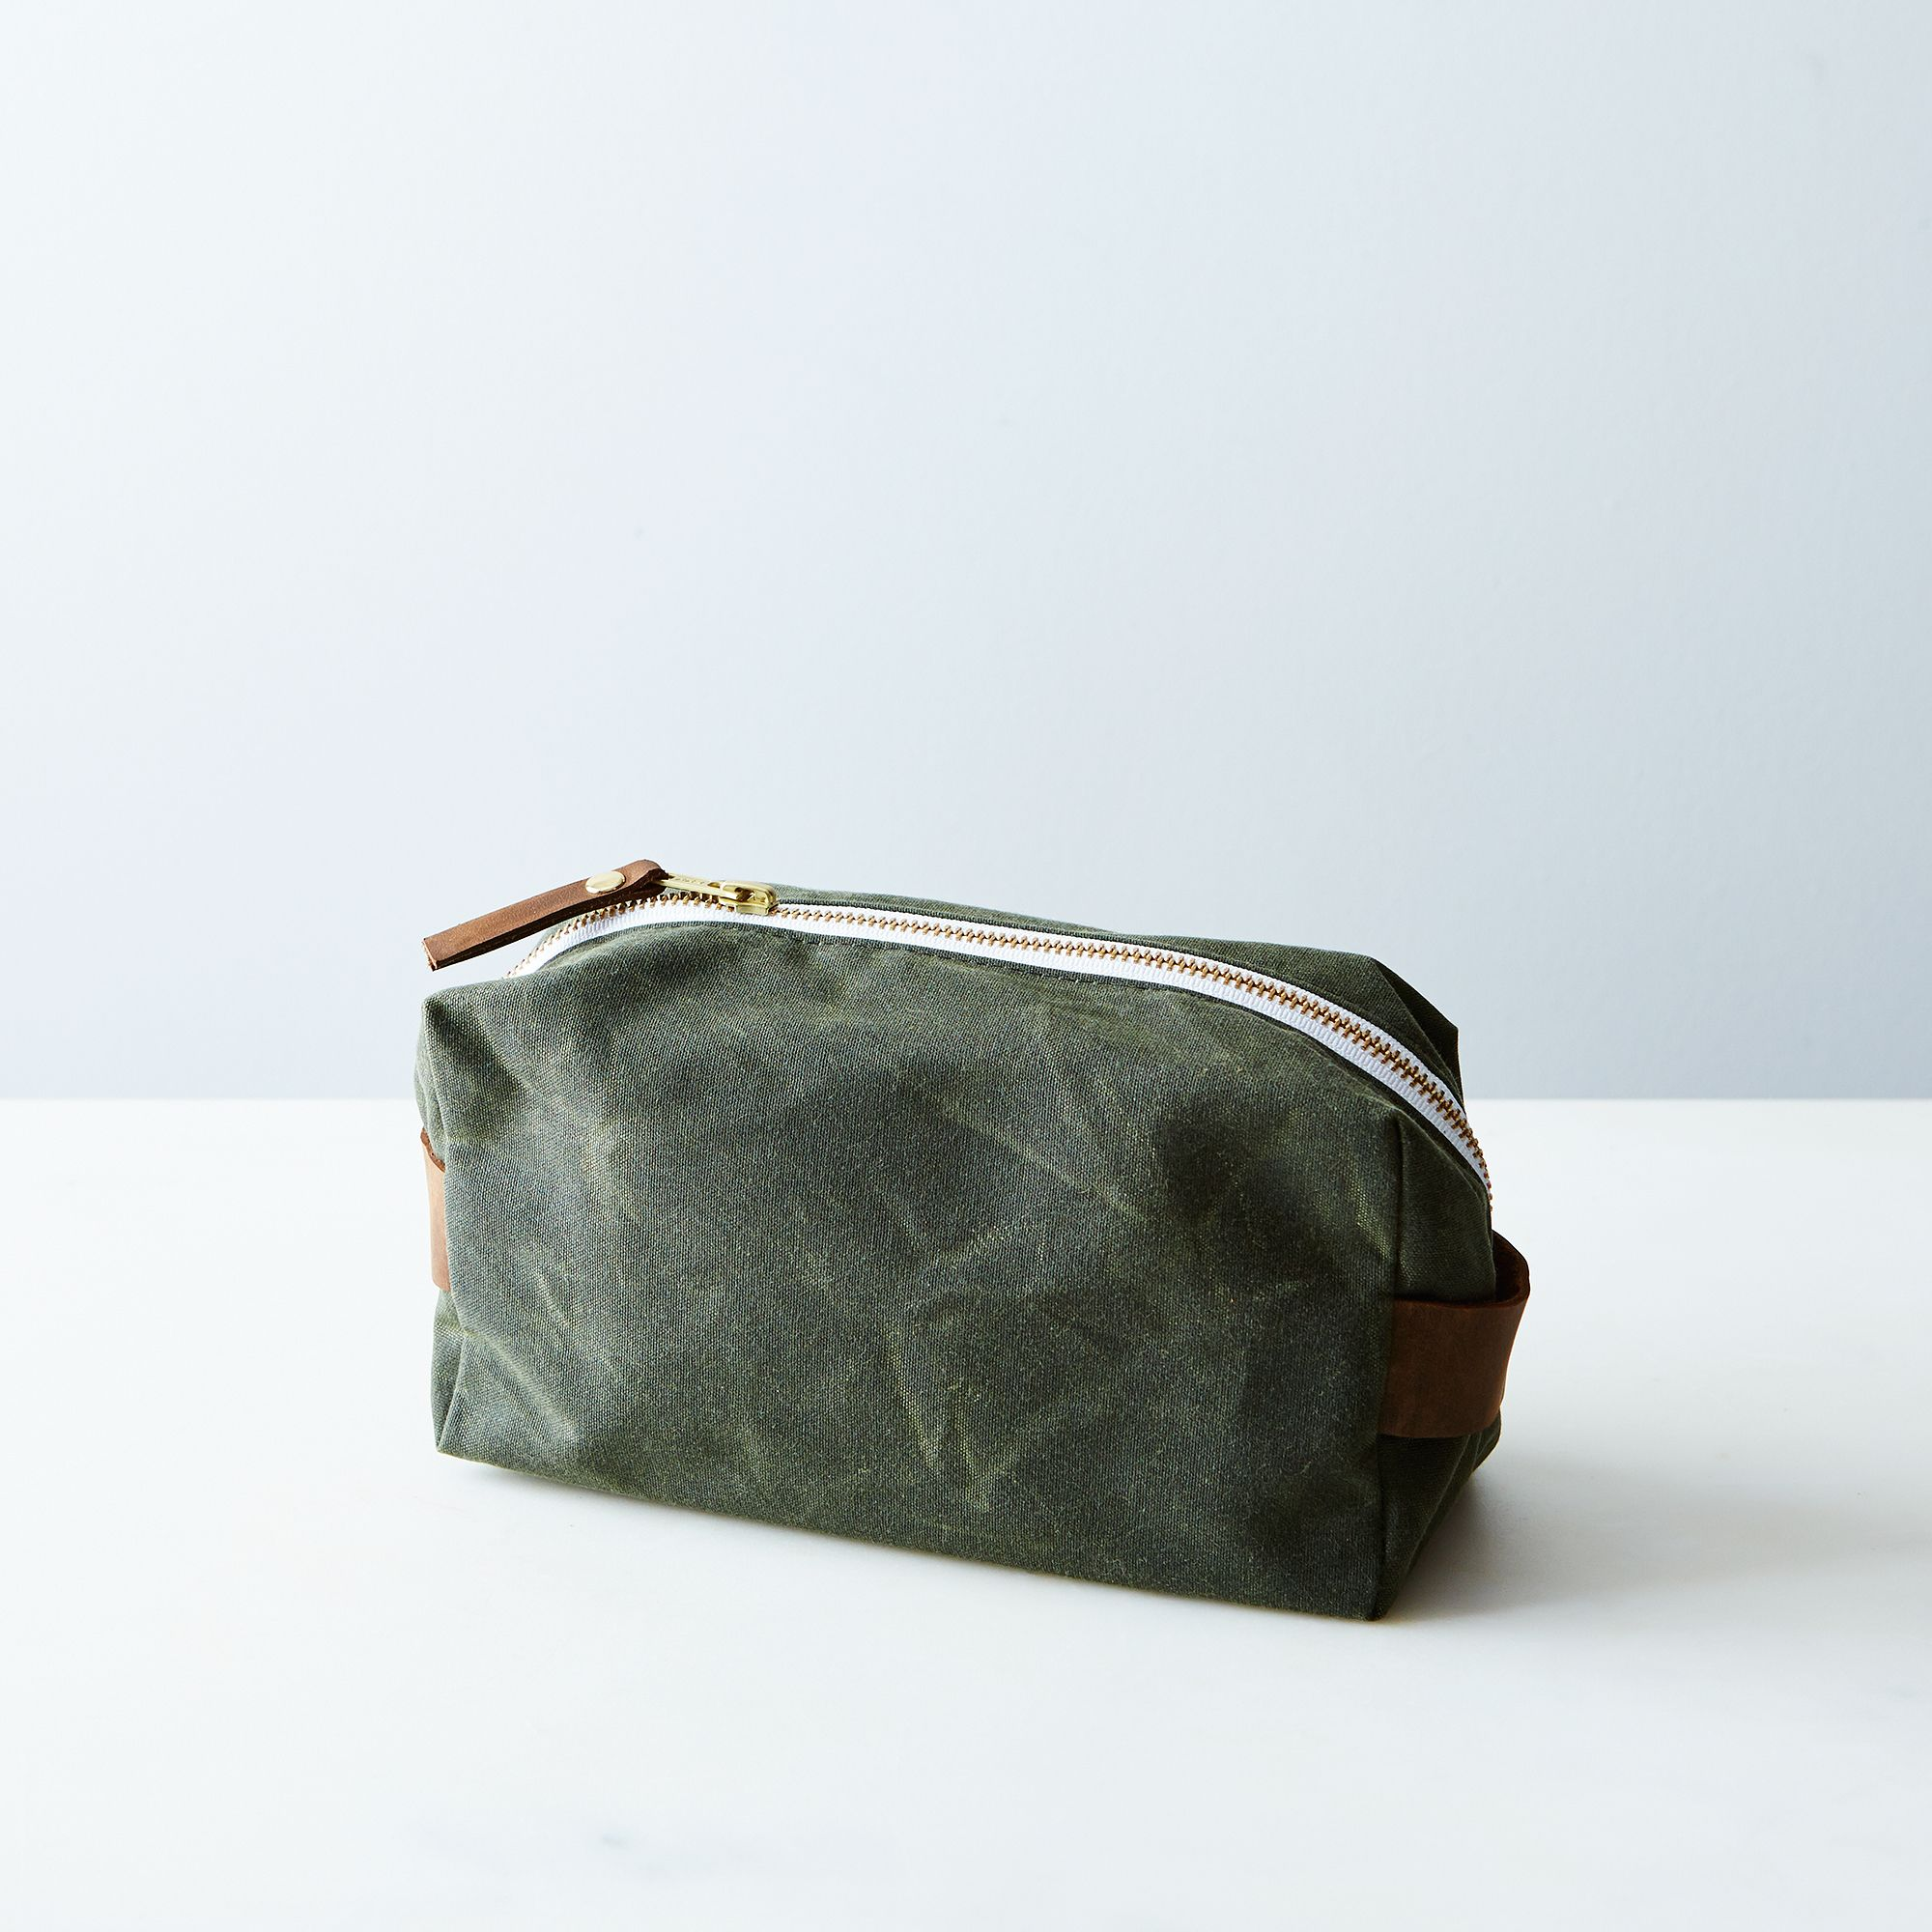 A774e002 a0f6 11e5 a190 0ef7535729df  butter design lab waxed canvas toiletries pouch weekender olive provisions mark weinberg 15 08 14 0927 silo